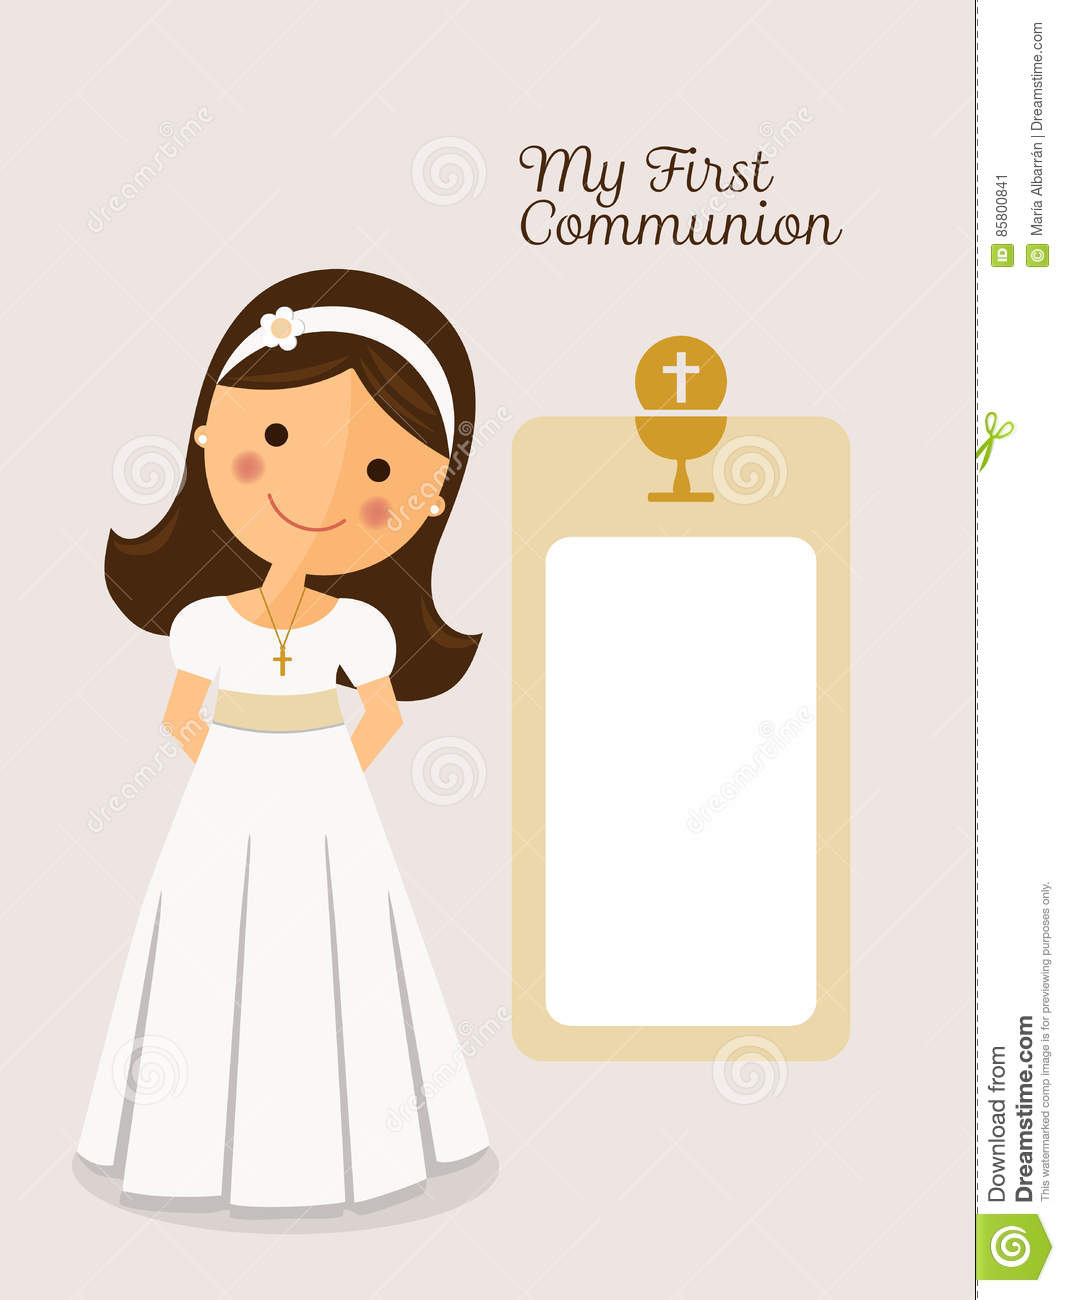 My First Communion Invitation Communion With Message Stock ...